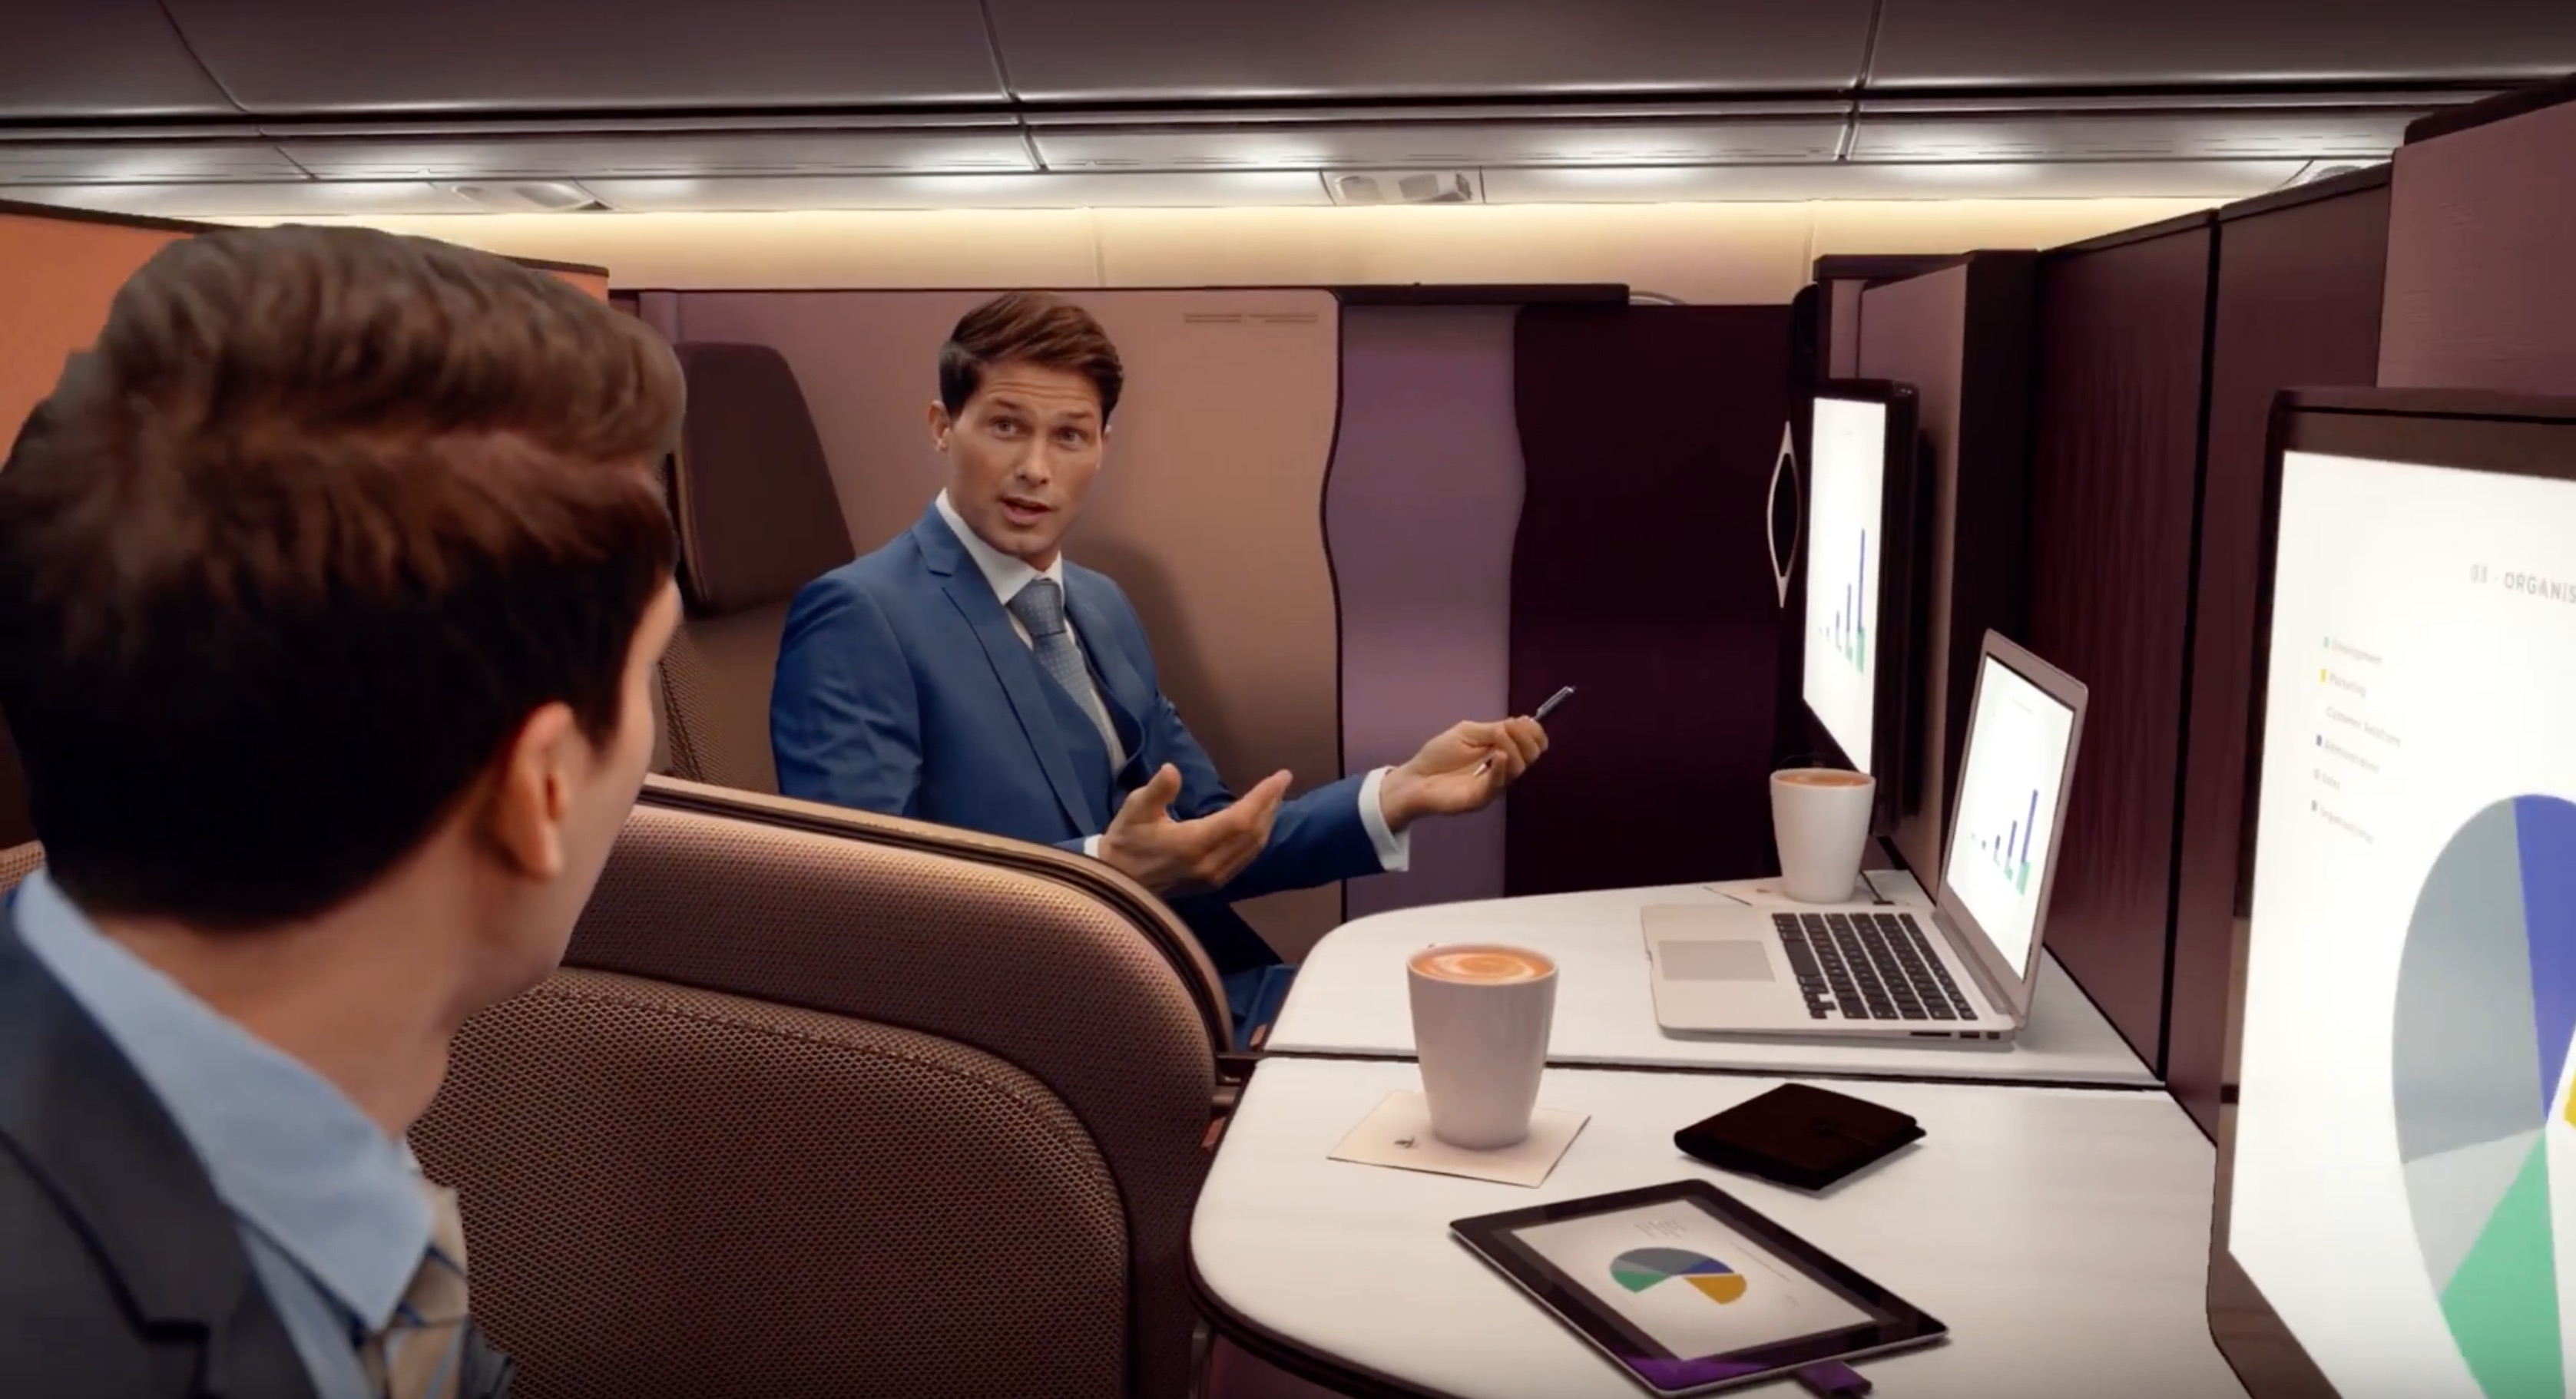 Qatar Airways' swanky new seats will revolutionize business travel